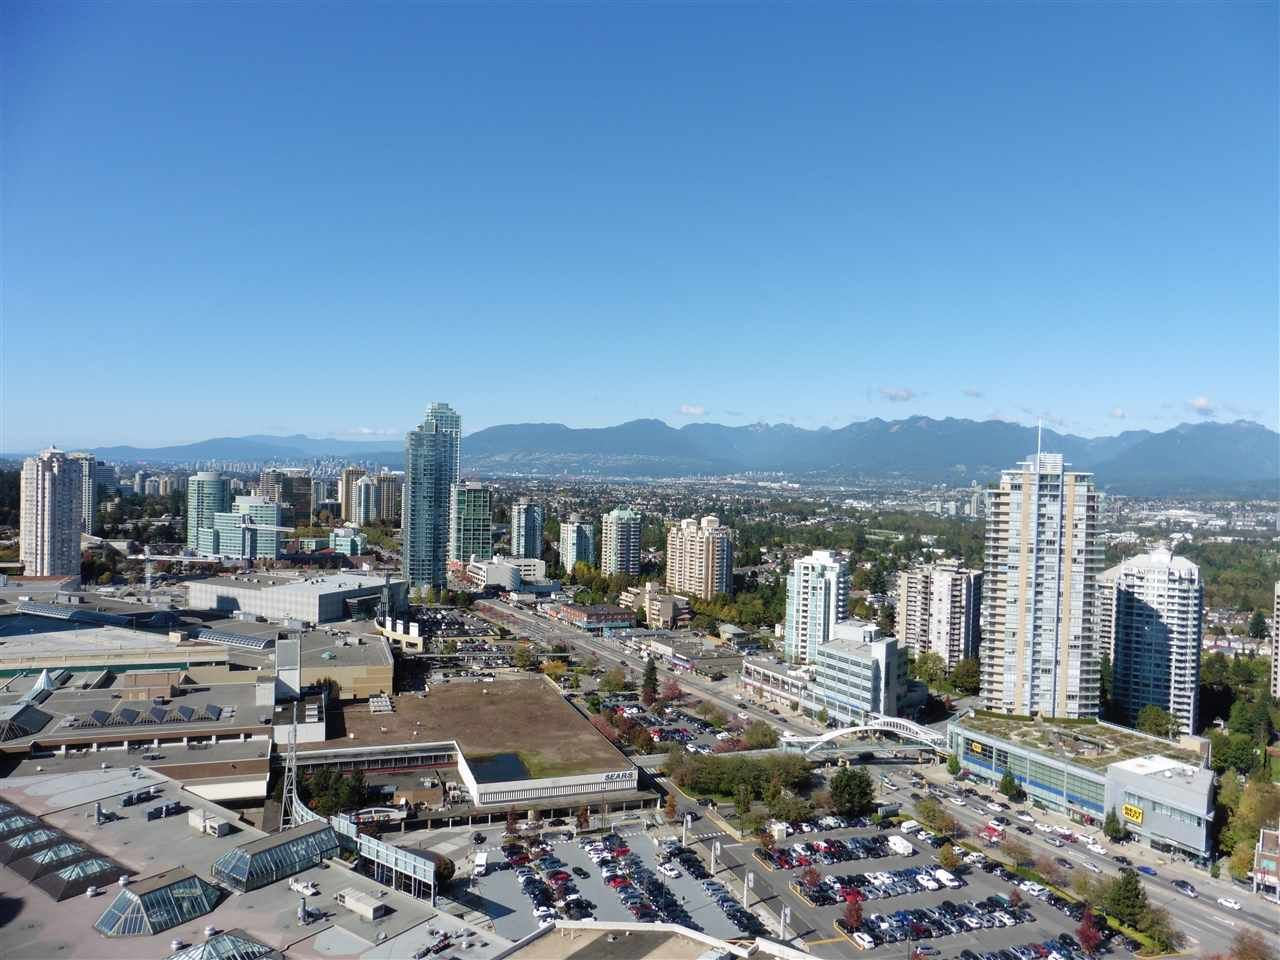 """Photo 2: Photos: 3702 4880 BENNETT Street in Burnaby: Metrotown Condo for sale in """"CHANCELLOR"""" (Burnaby South)  : MLS®# R2006395"""